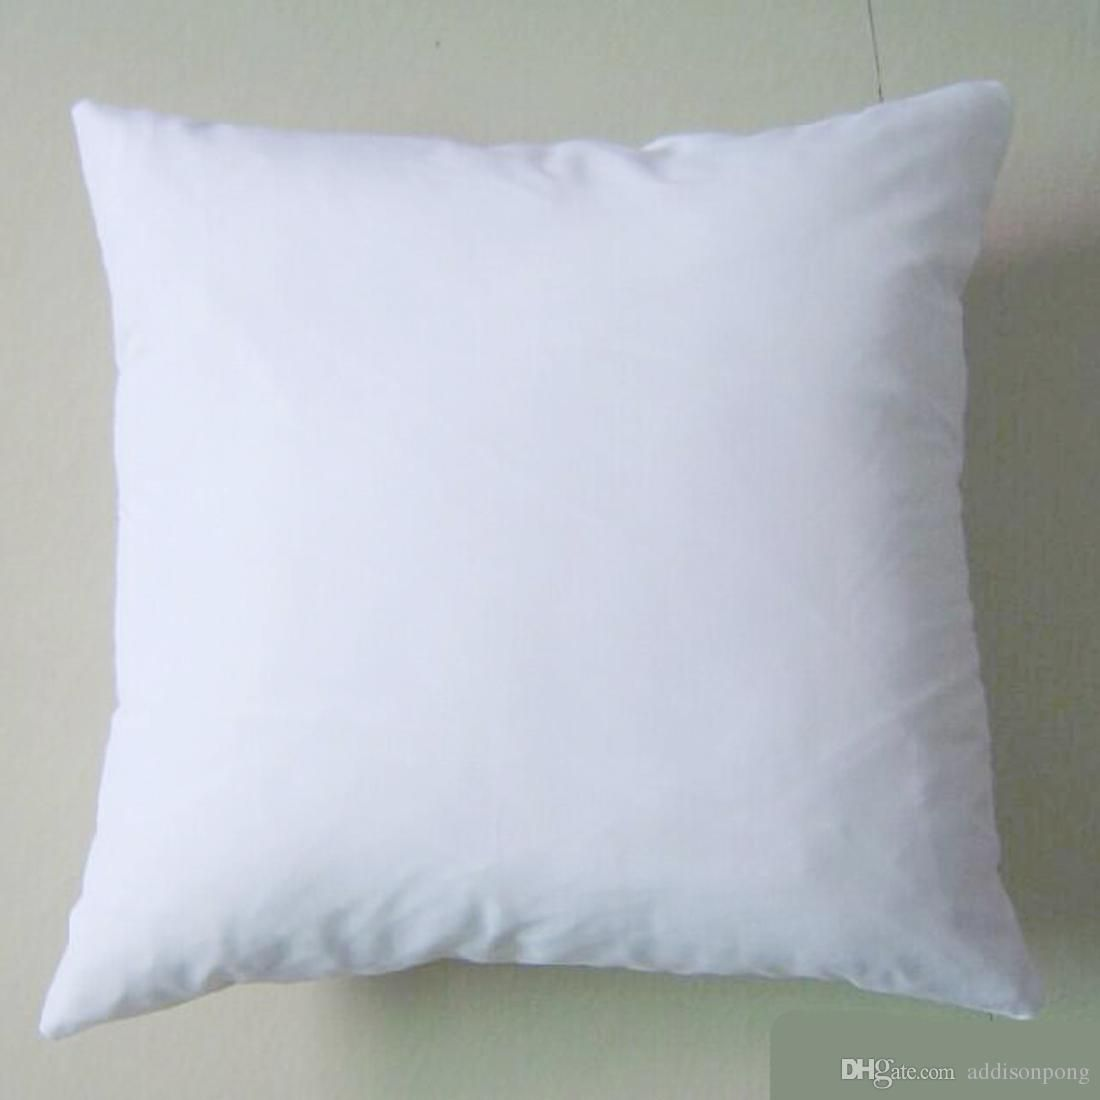 20pc plain white color 20GSM cotton canvas cushion cover with ...